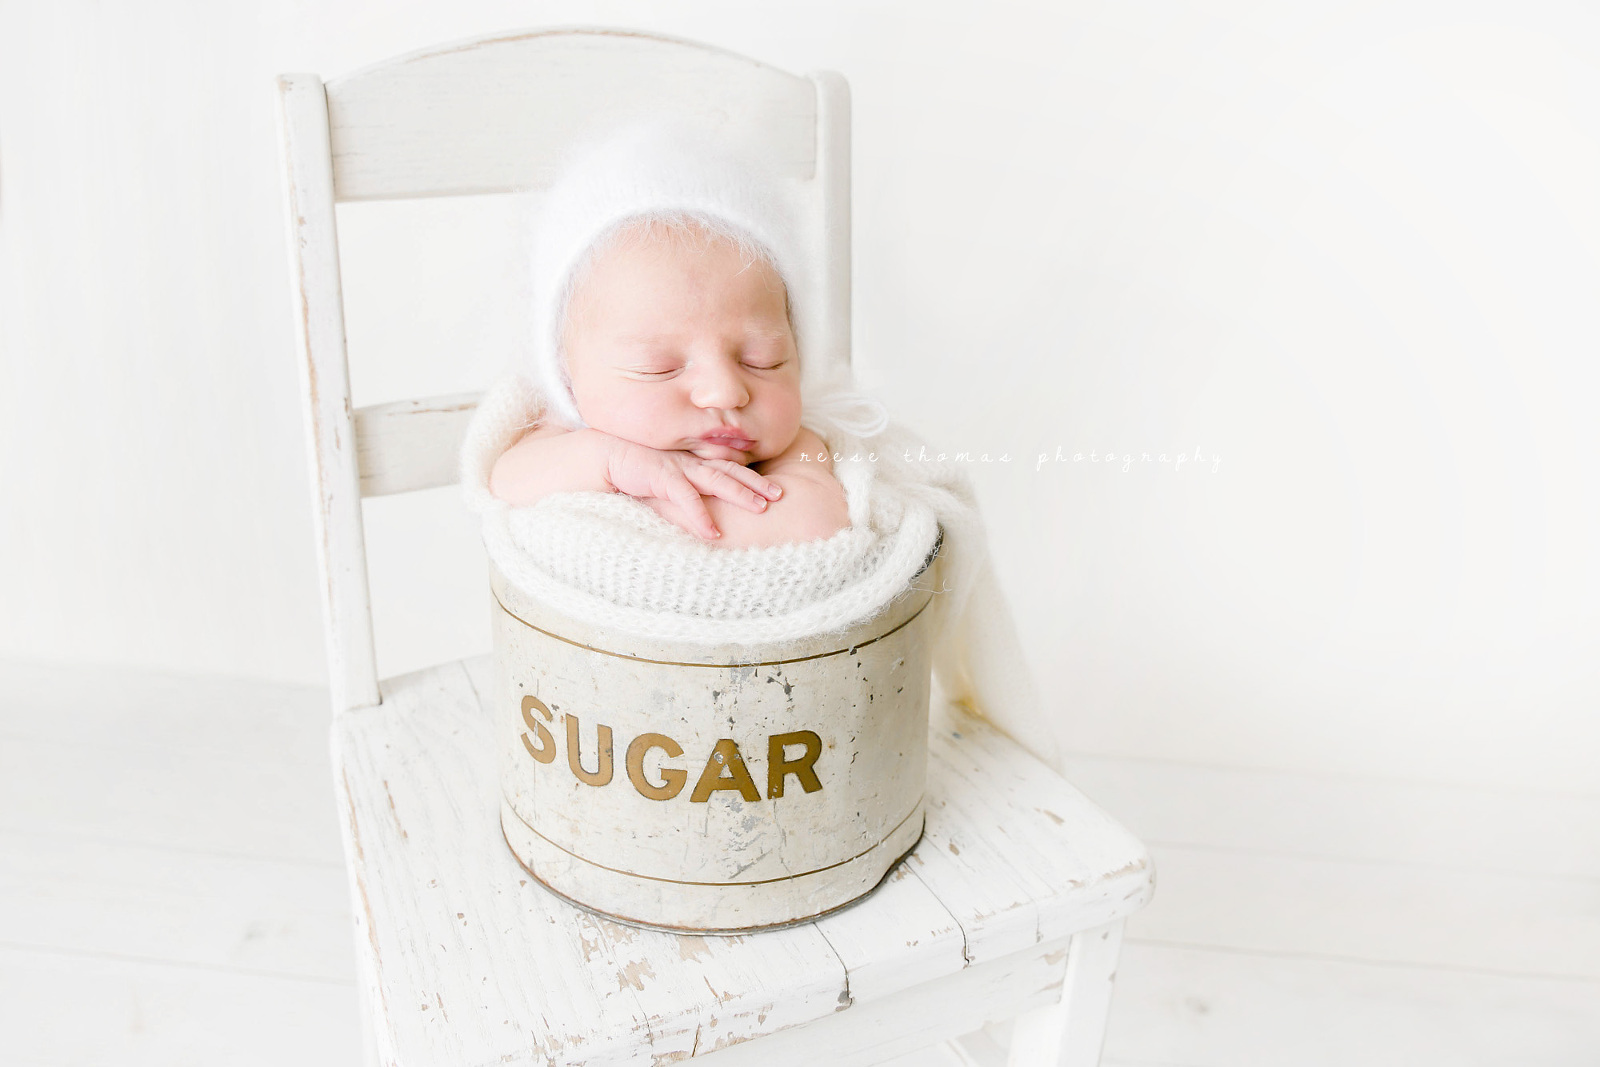 Orange-County-Newborn-Portfolio-Newborn-Boho-Baby-in-Sugar-Tin